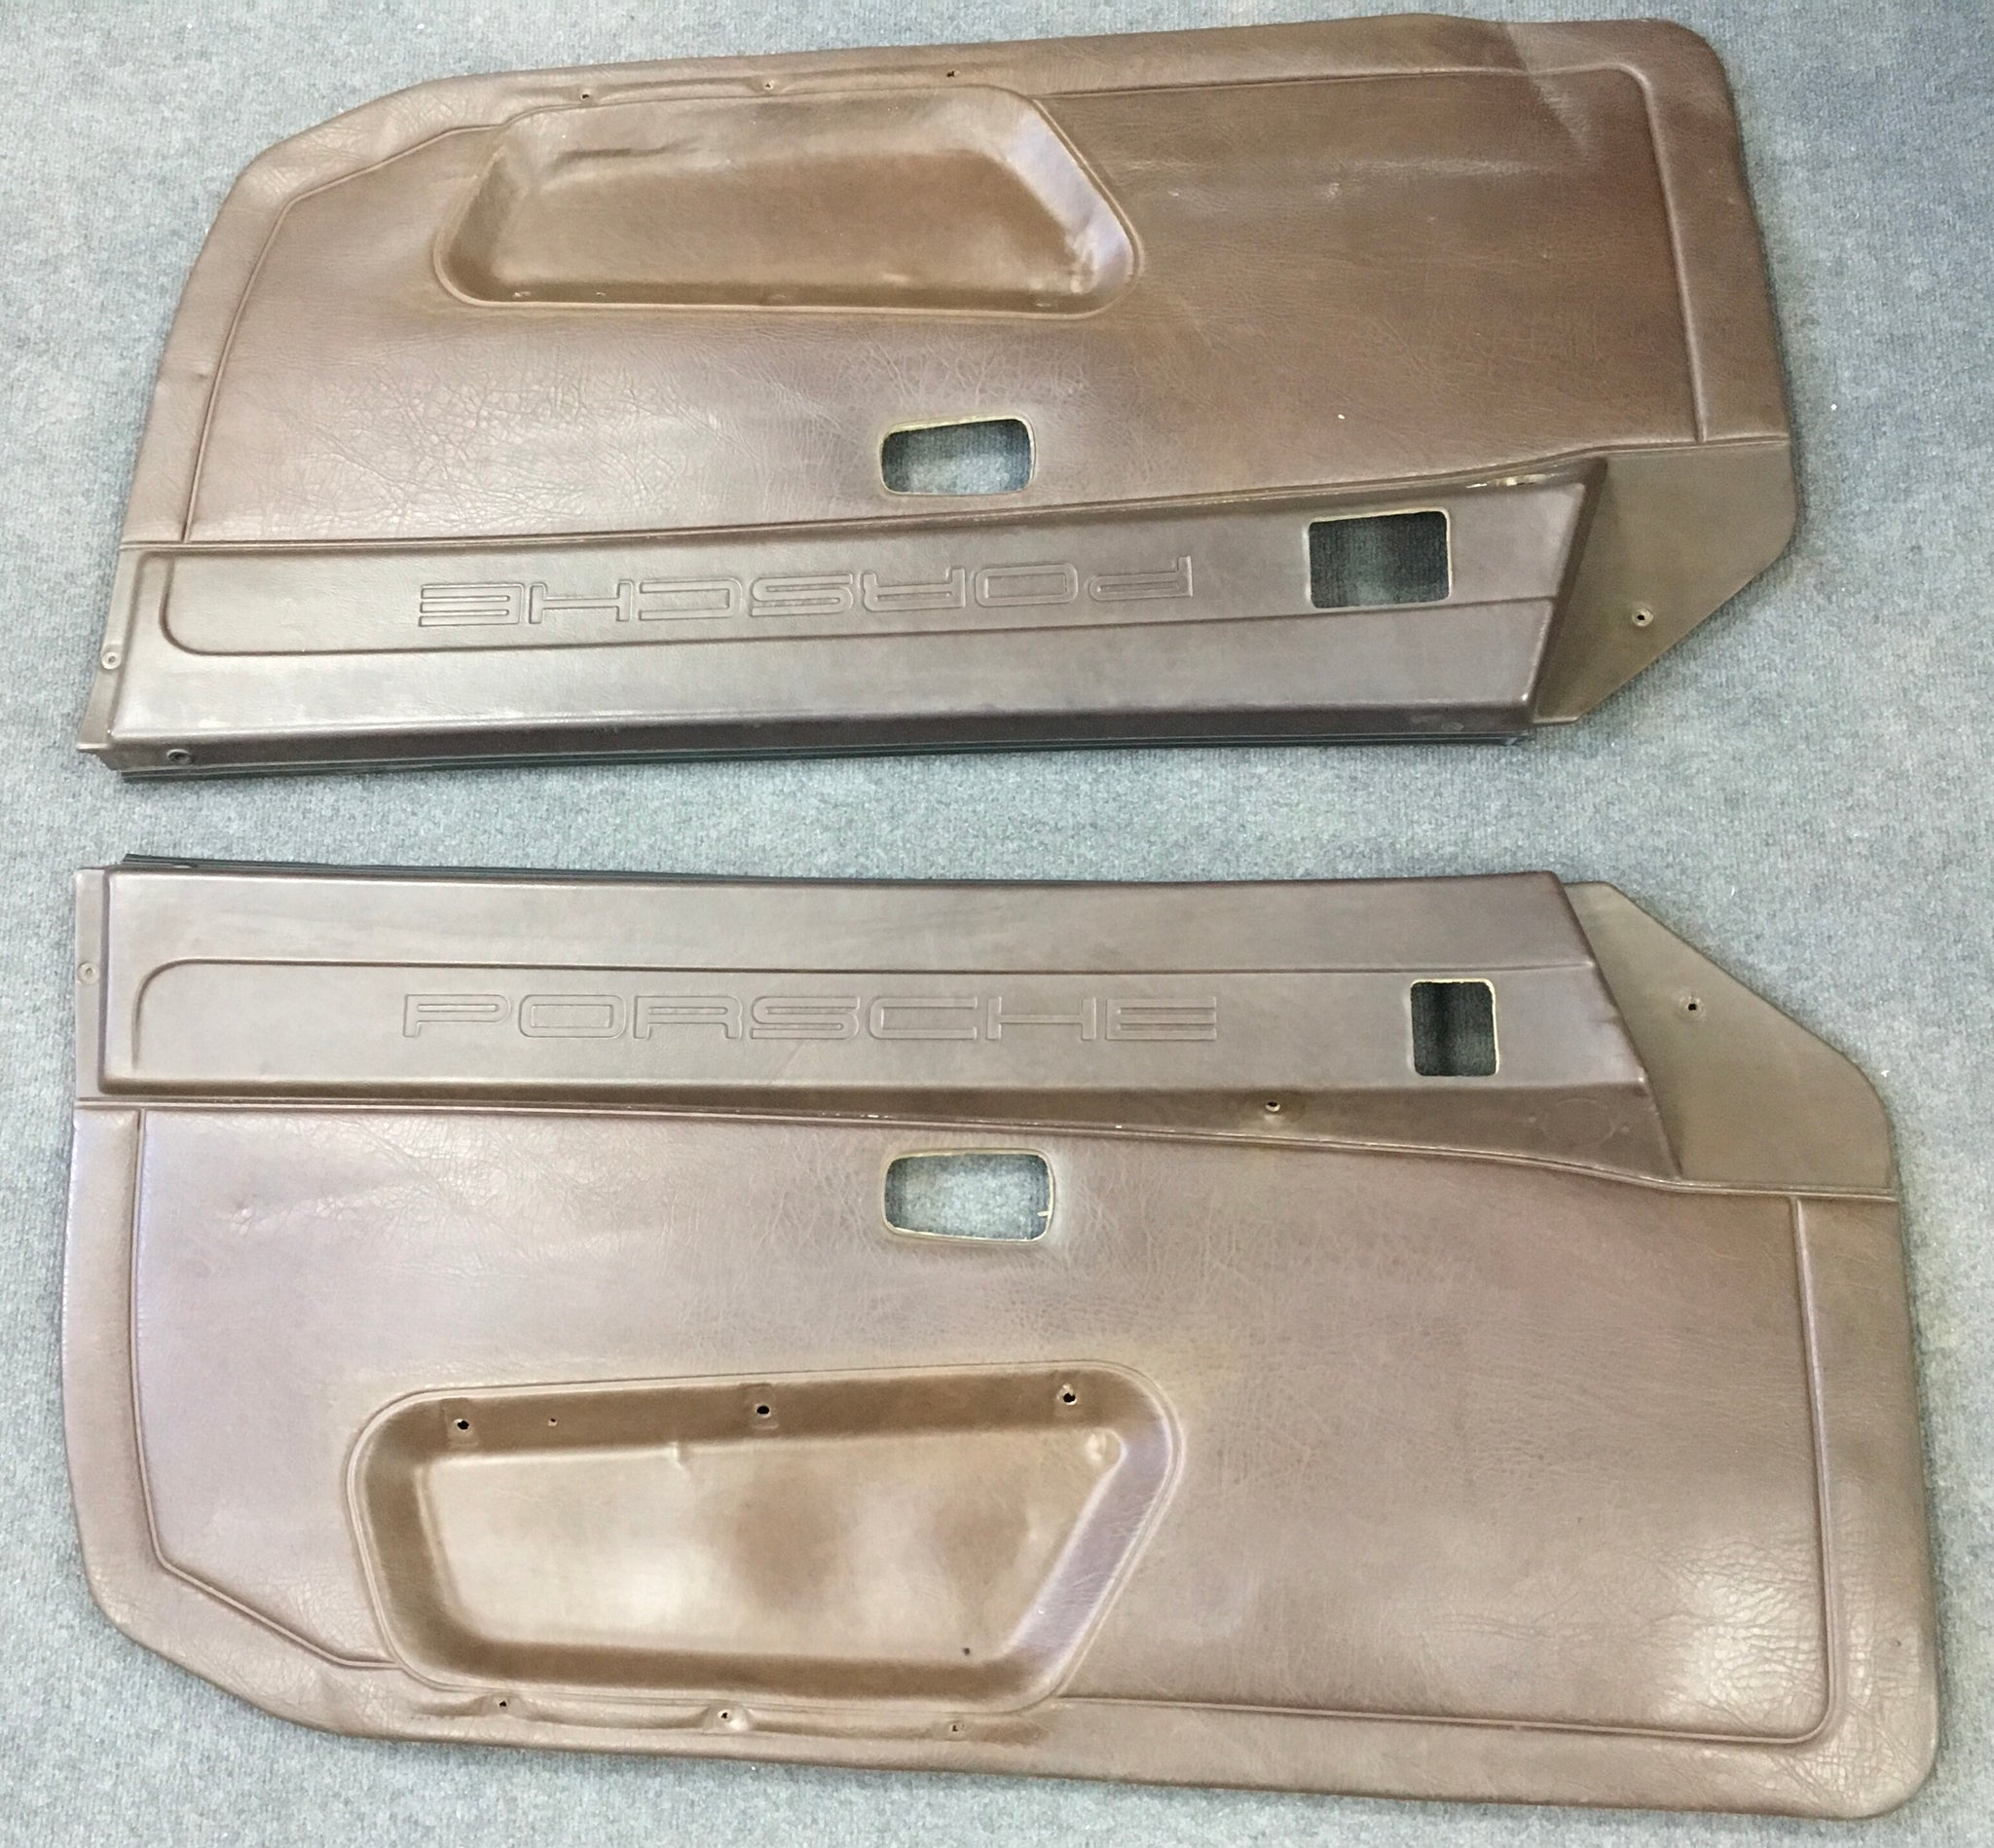 Porsche 944/924 brown logo door cards early type no speaker holes. - Porsche Spares UK Ltd